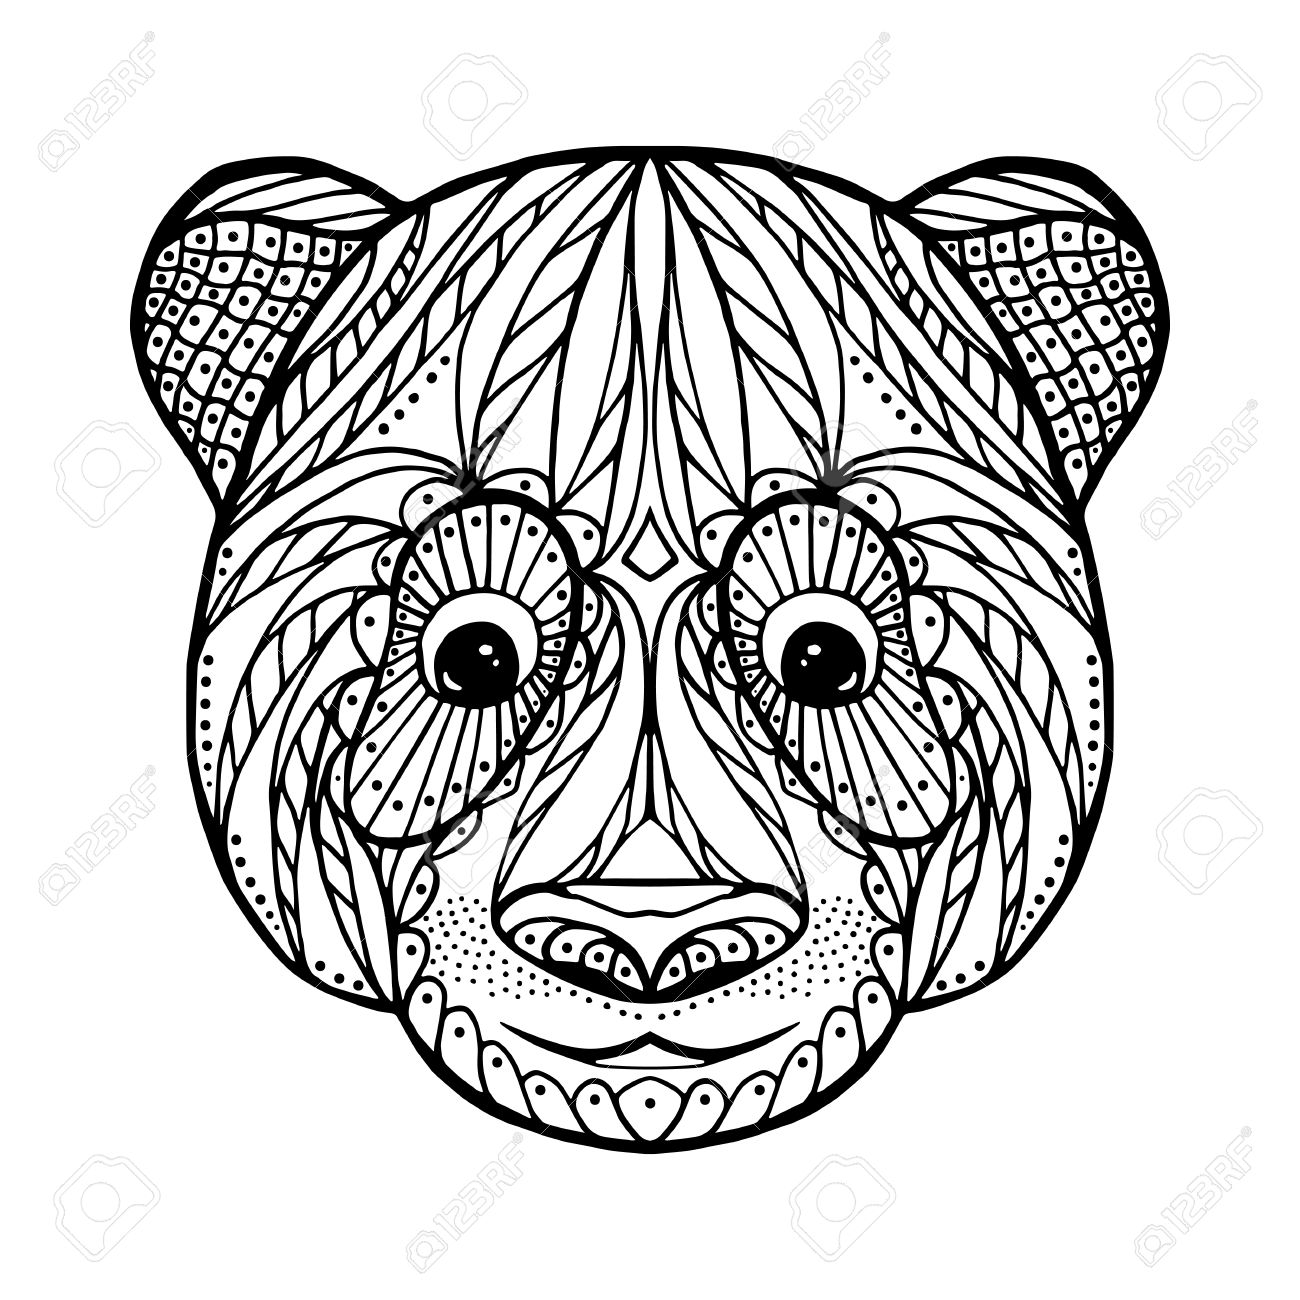 Zen Tangle Head Of Panda, For Adult Anti Stress Coloring Page ...